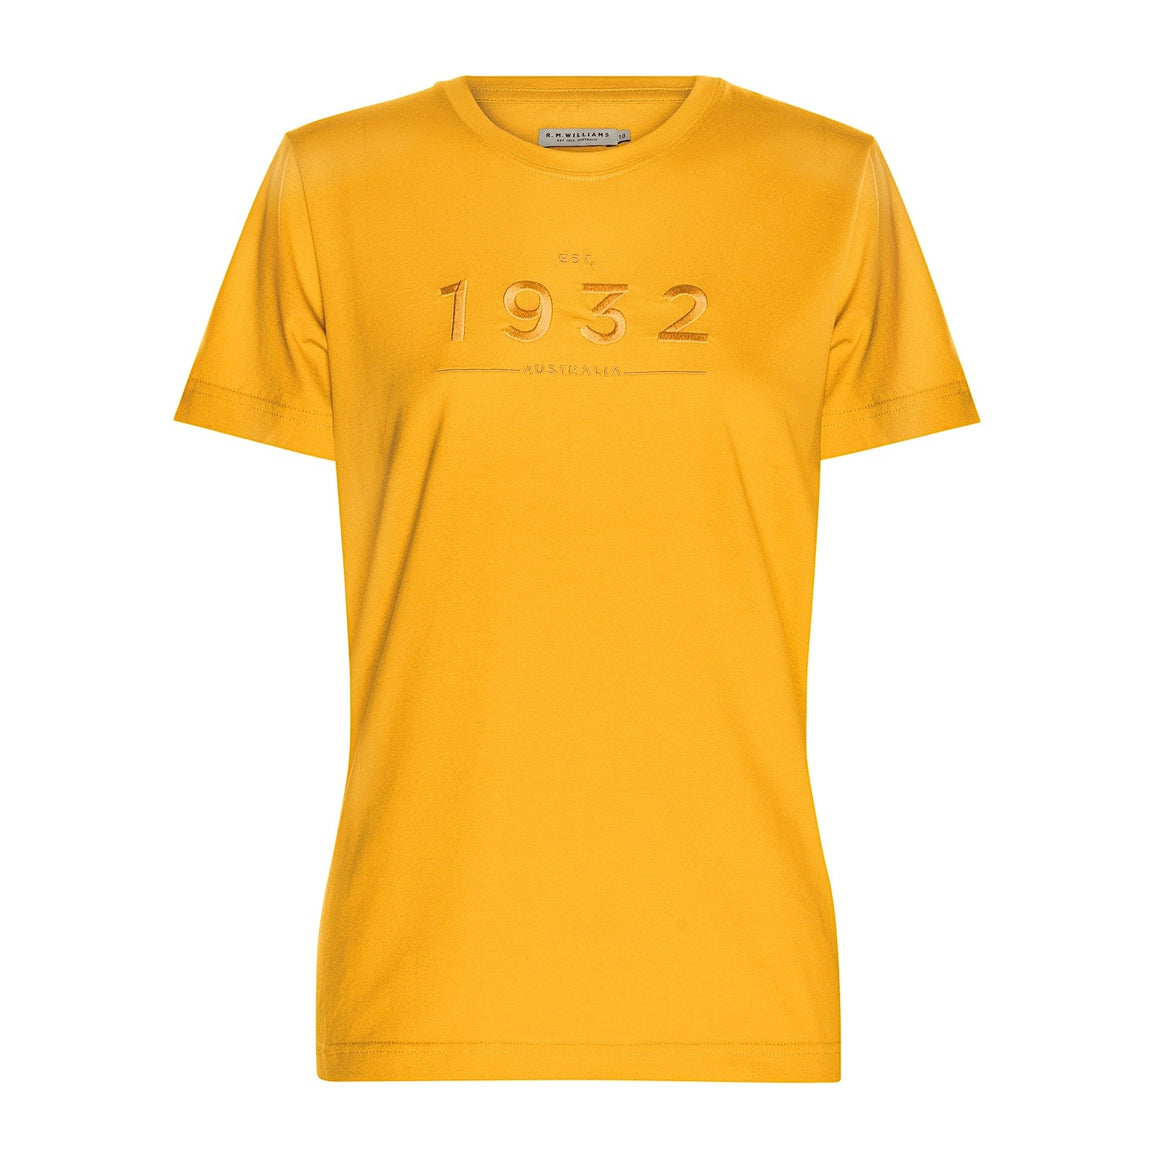 R.M.Williams Established in 1932 T-Shirt Mustard